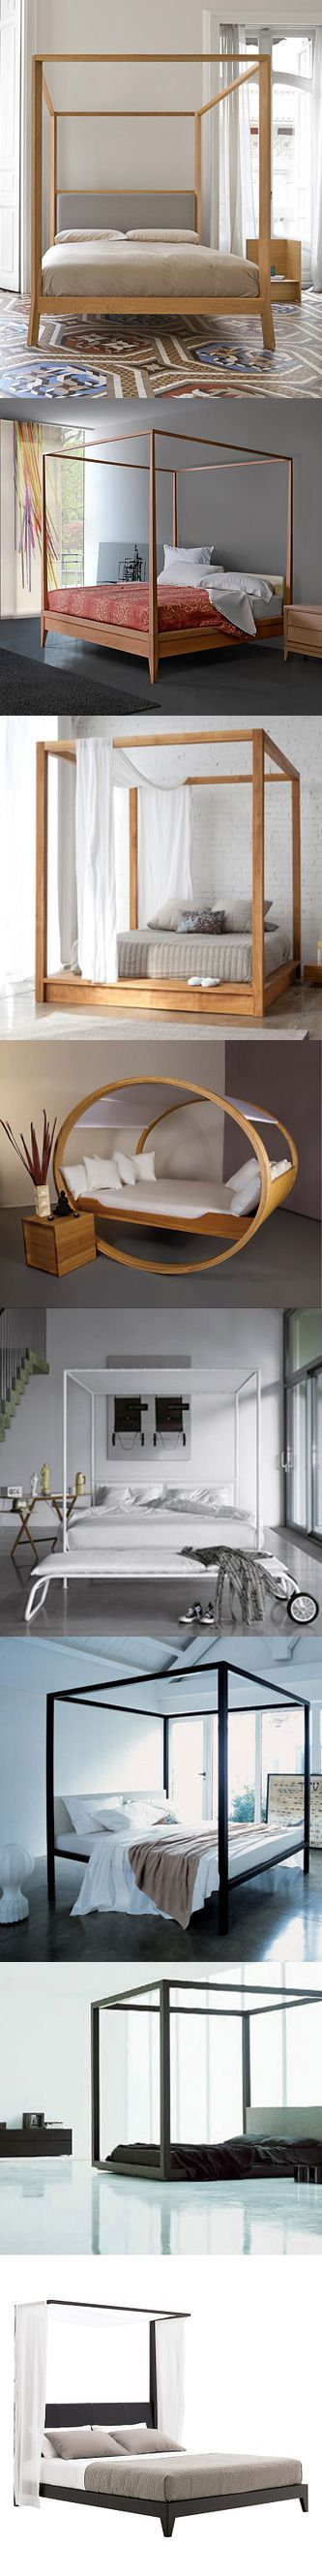 17 best ideas about modern canopy bed on pinterest | canopy beds